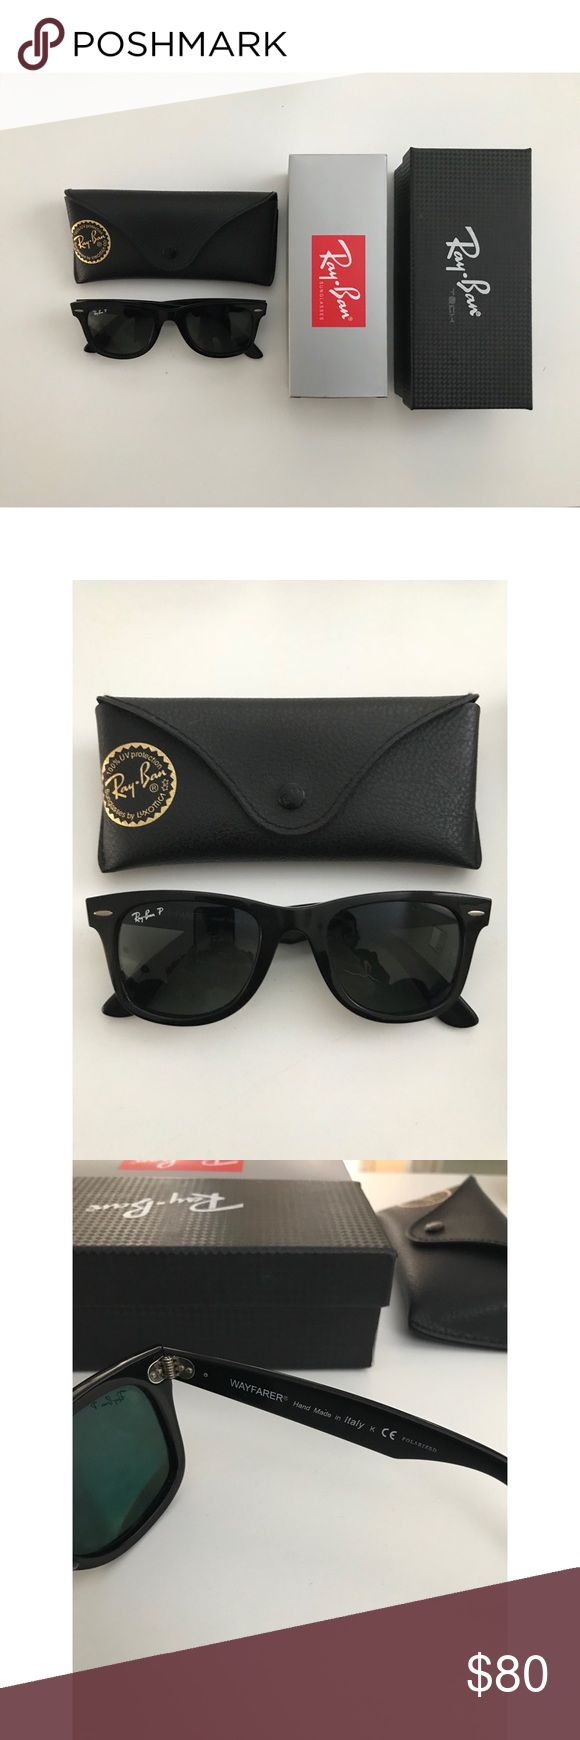 Authentic Polarized Ray-Ban Wayfarer Sunglasses RB2140 unisex glasses. Includes everything in pictures plus a cleaning cloth for lenses. Preowned: overall condition is very good. Frame has some scratches (noticeable when you look very closely), but lenses are fine! Ray-Ban Accessories Sunglasses